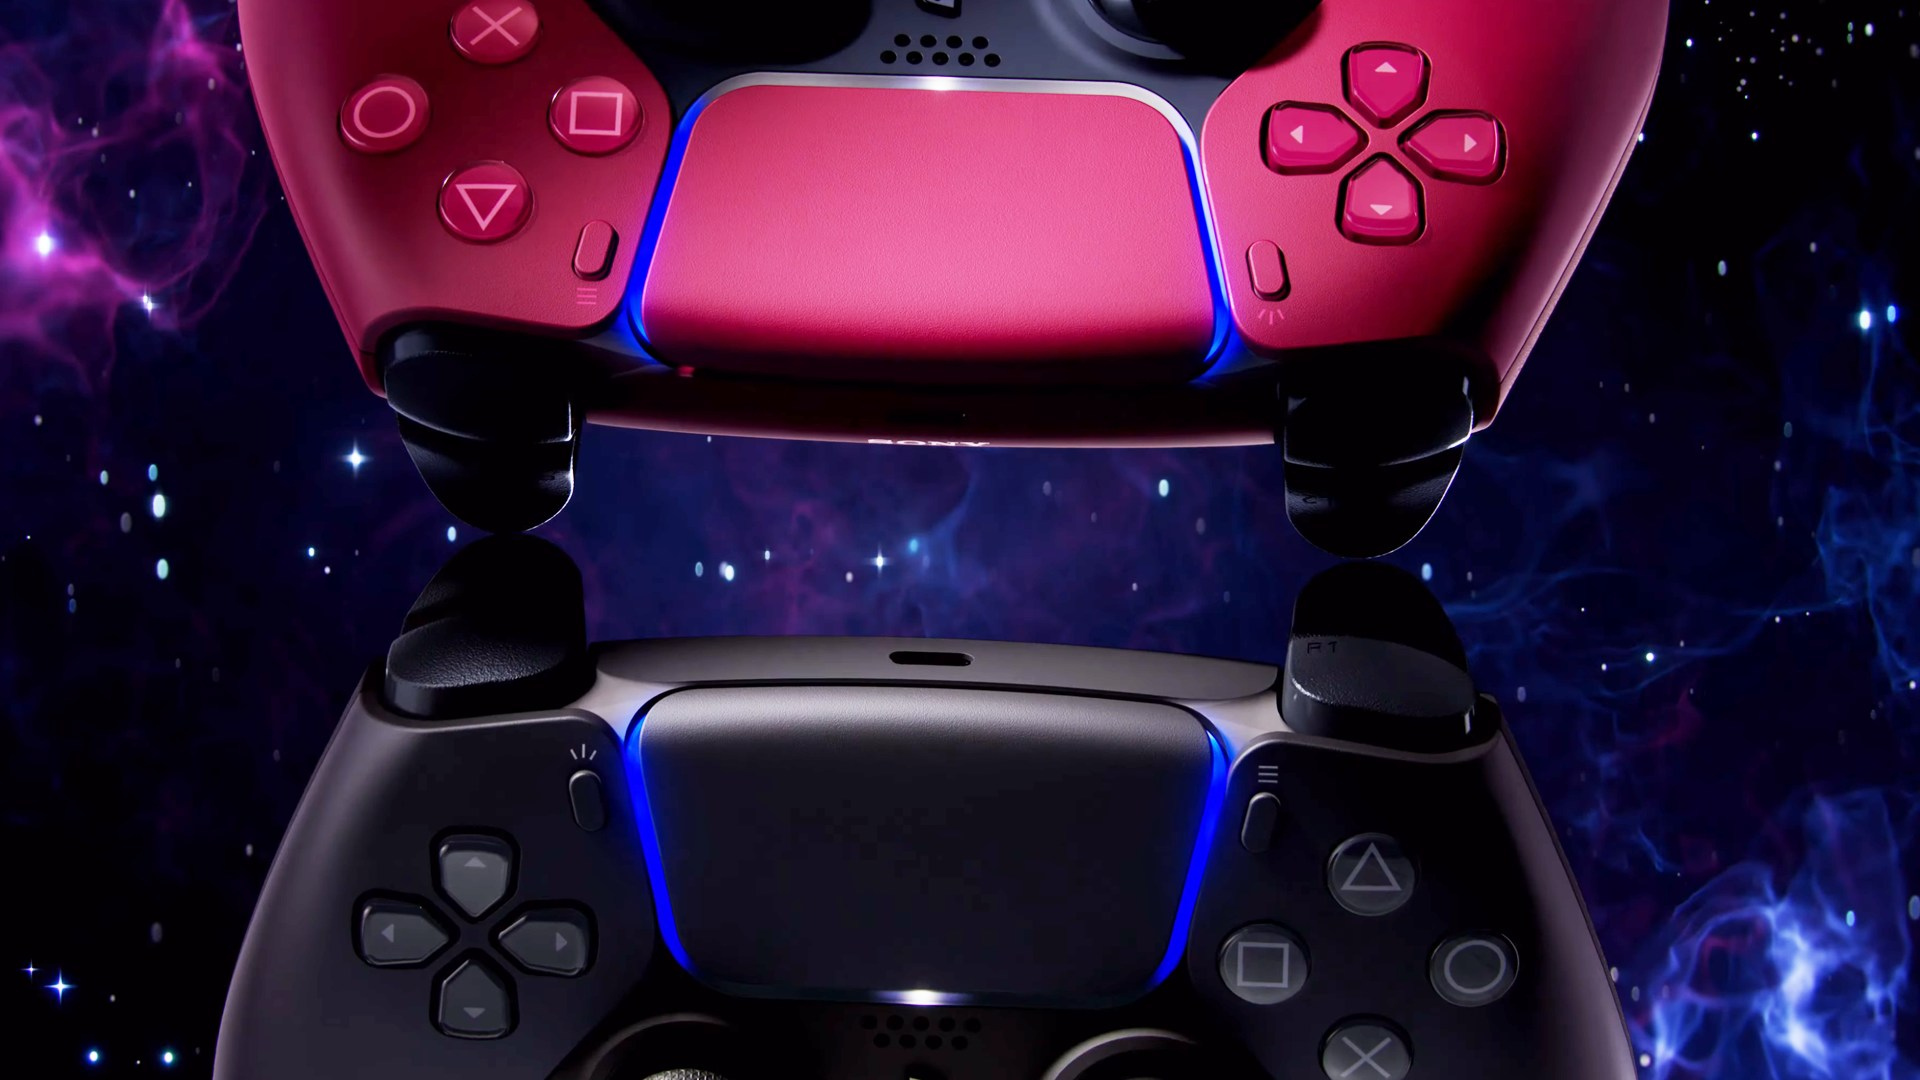 Gaming, Sony, Spielkonsole, Playstation, Design, Konsolen, PlayStation 5, ps5, Sony PlayStation 5, Farbe, Farben, Spielkonsolen, Midnight Black, Cosmic Red